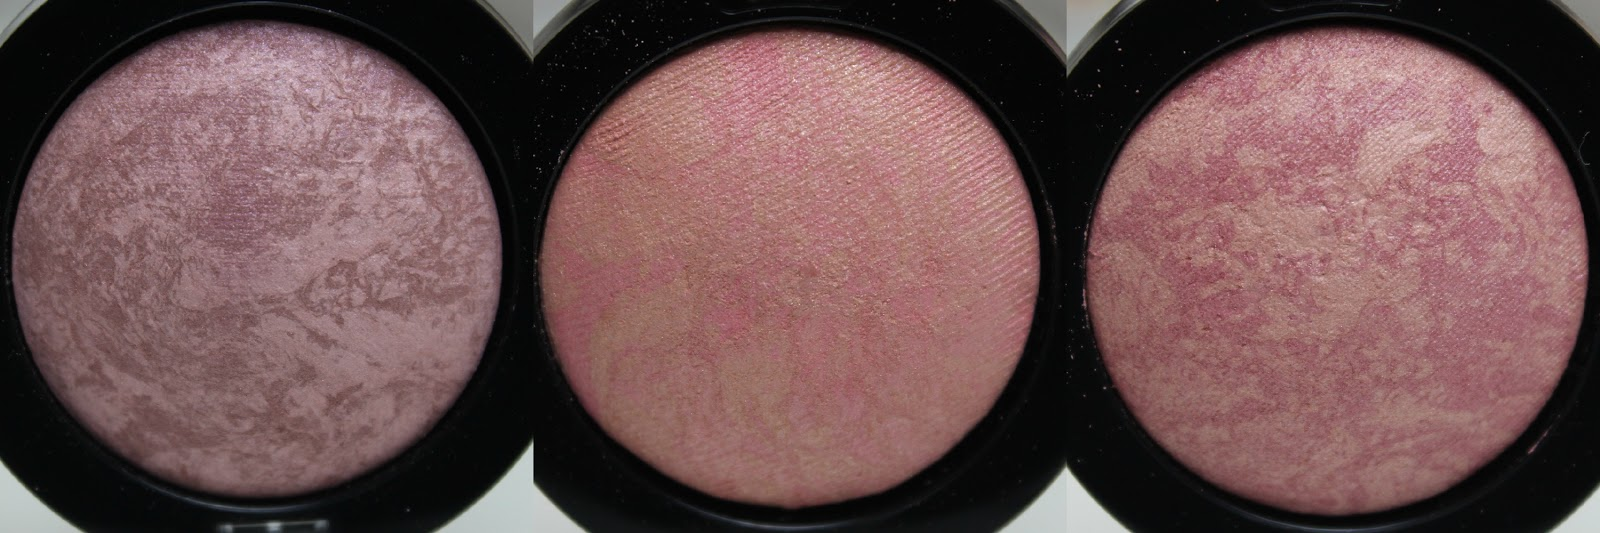 A picture of Max Factor Creme Puff Blush in 20 Lavish Mauve, 05 Lovely Pink, 15 Seductive Pink